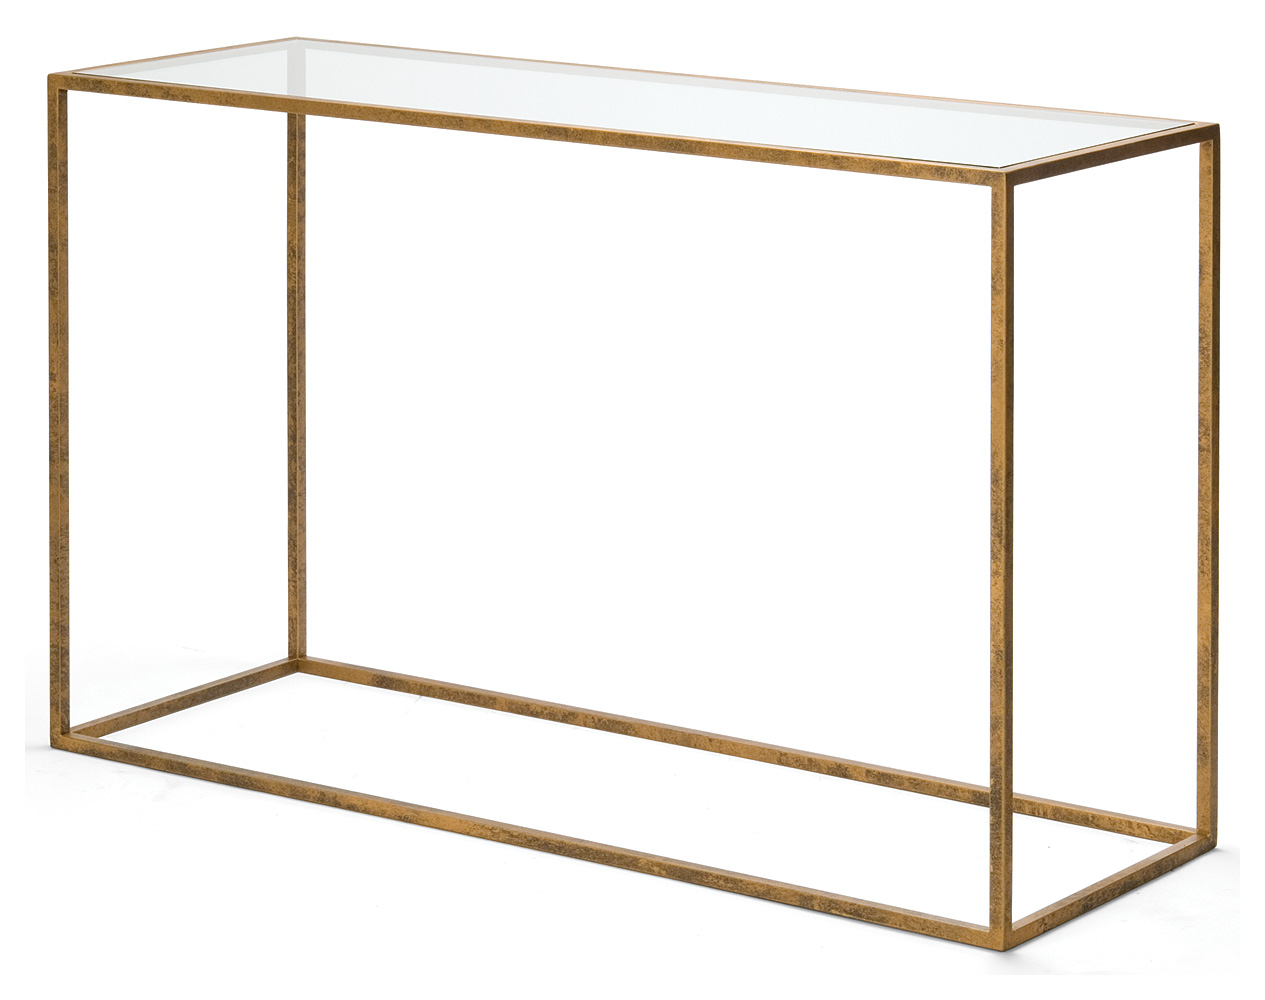 Upton Console Table Console Tables Furniture Decorus Furniture ~ Sofa Table With Glass Top